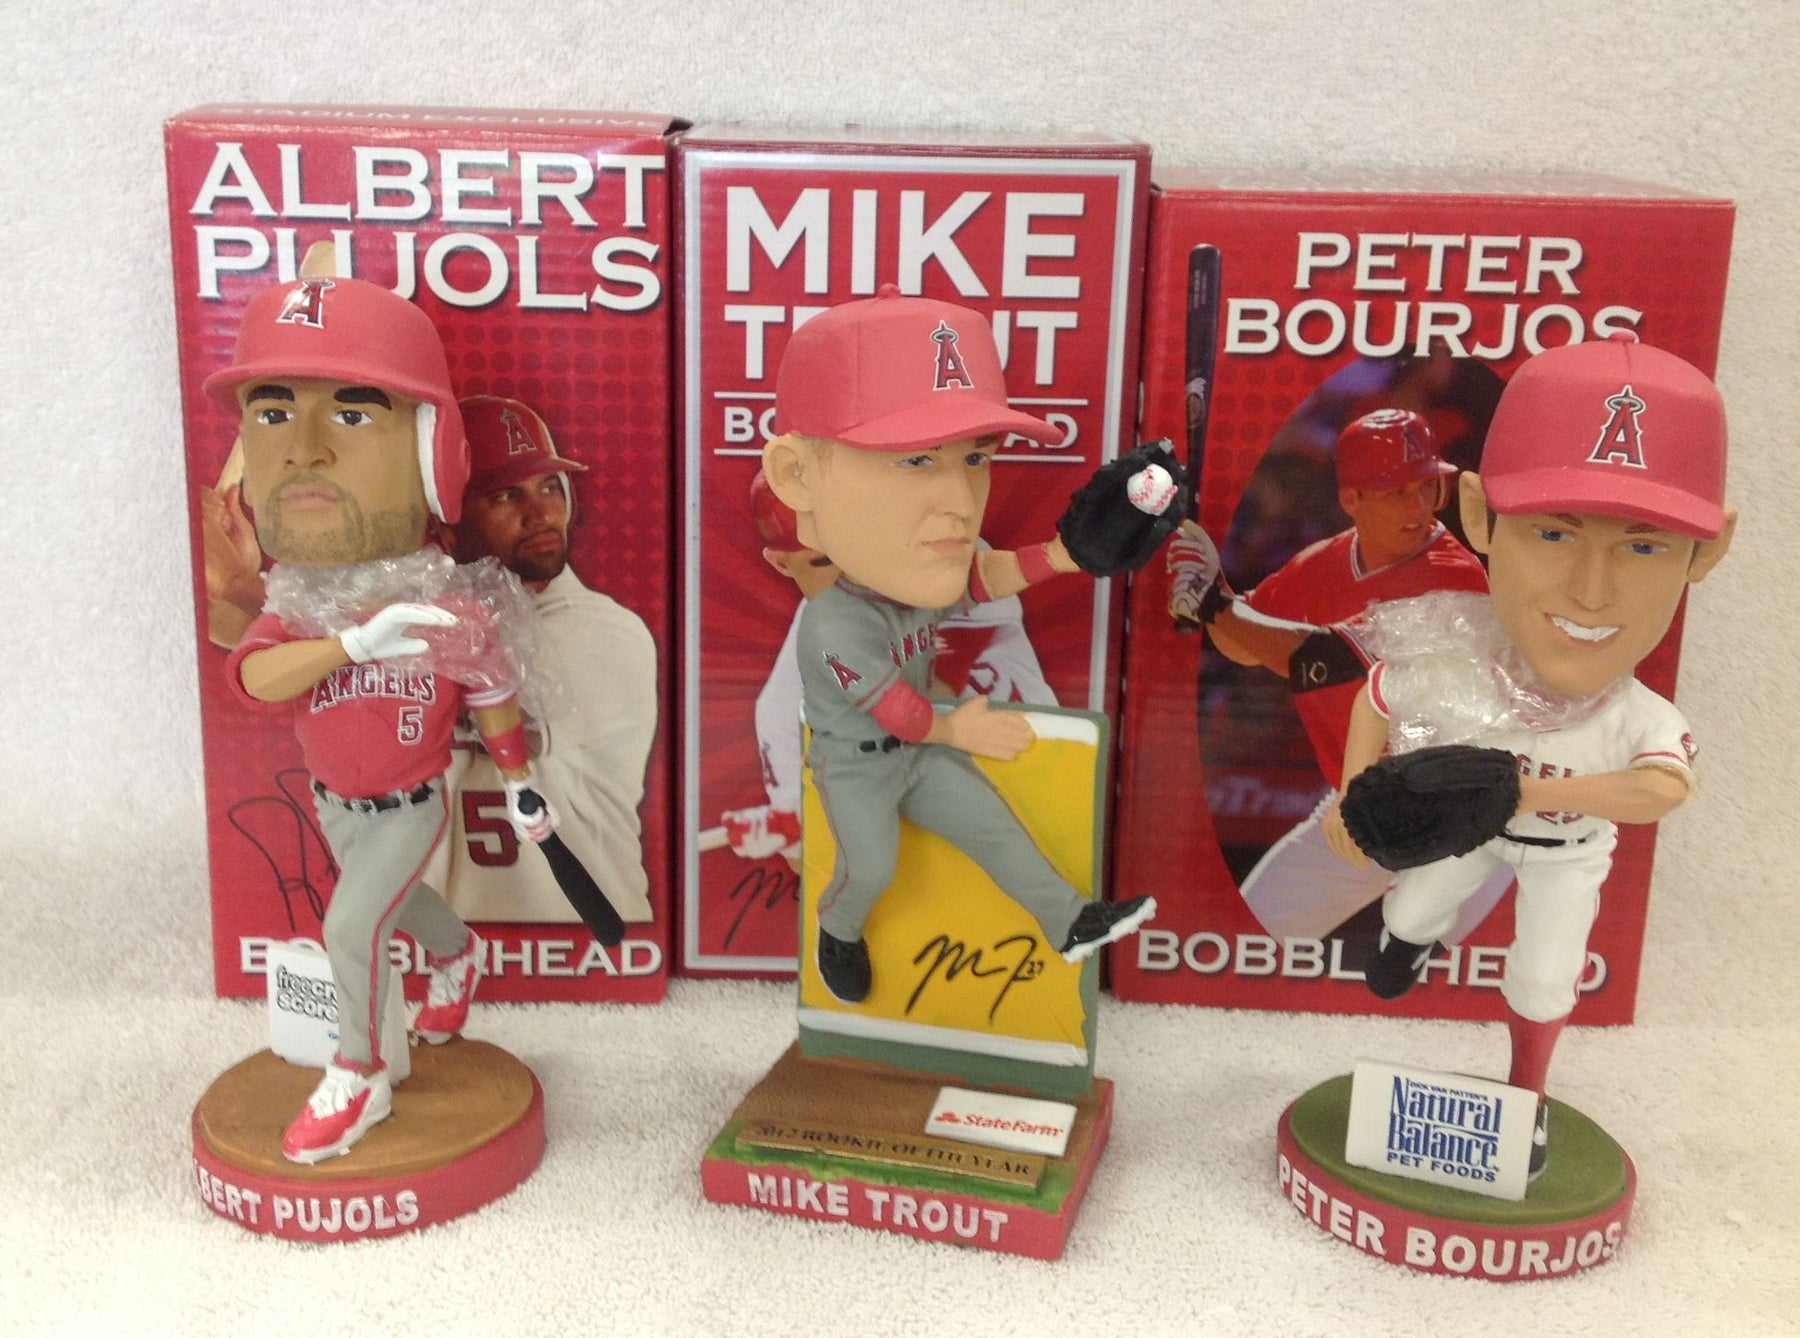 Mike Trout and Albert Pujols Peter Bourjos Bobblehead Set - BobblesGalore